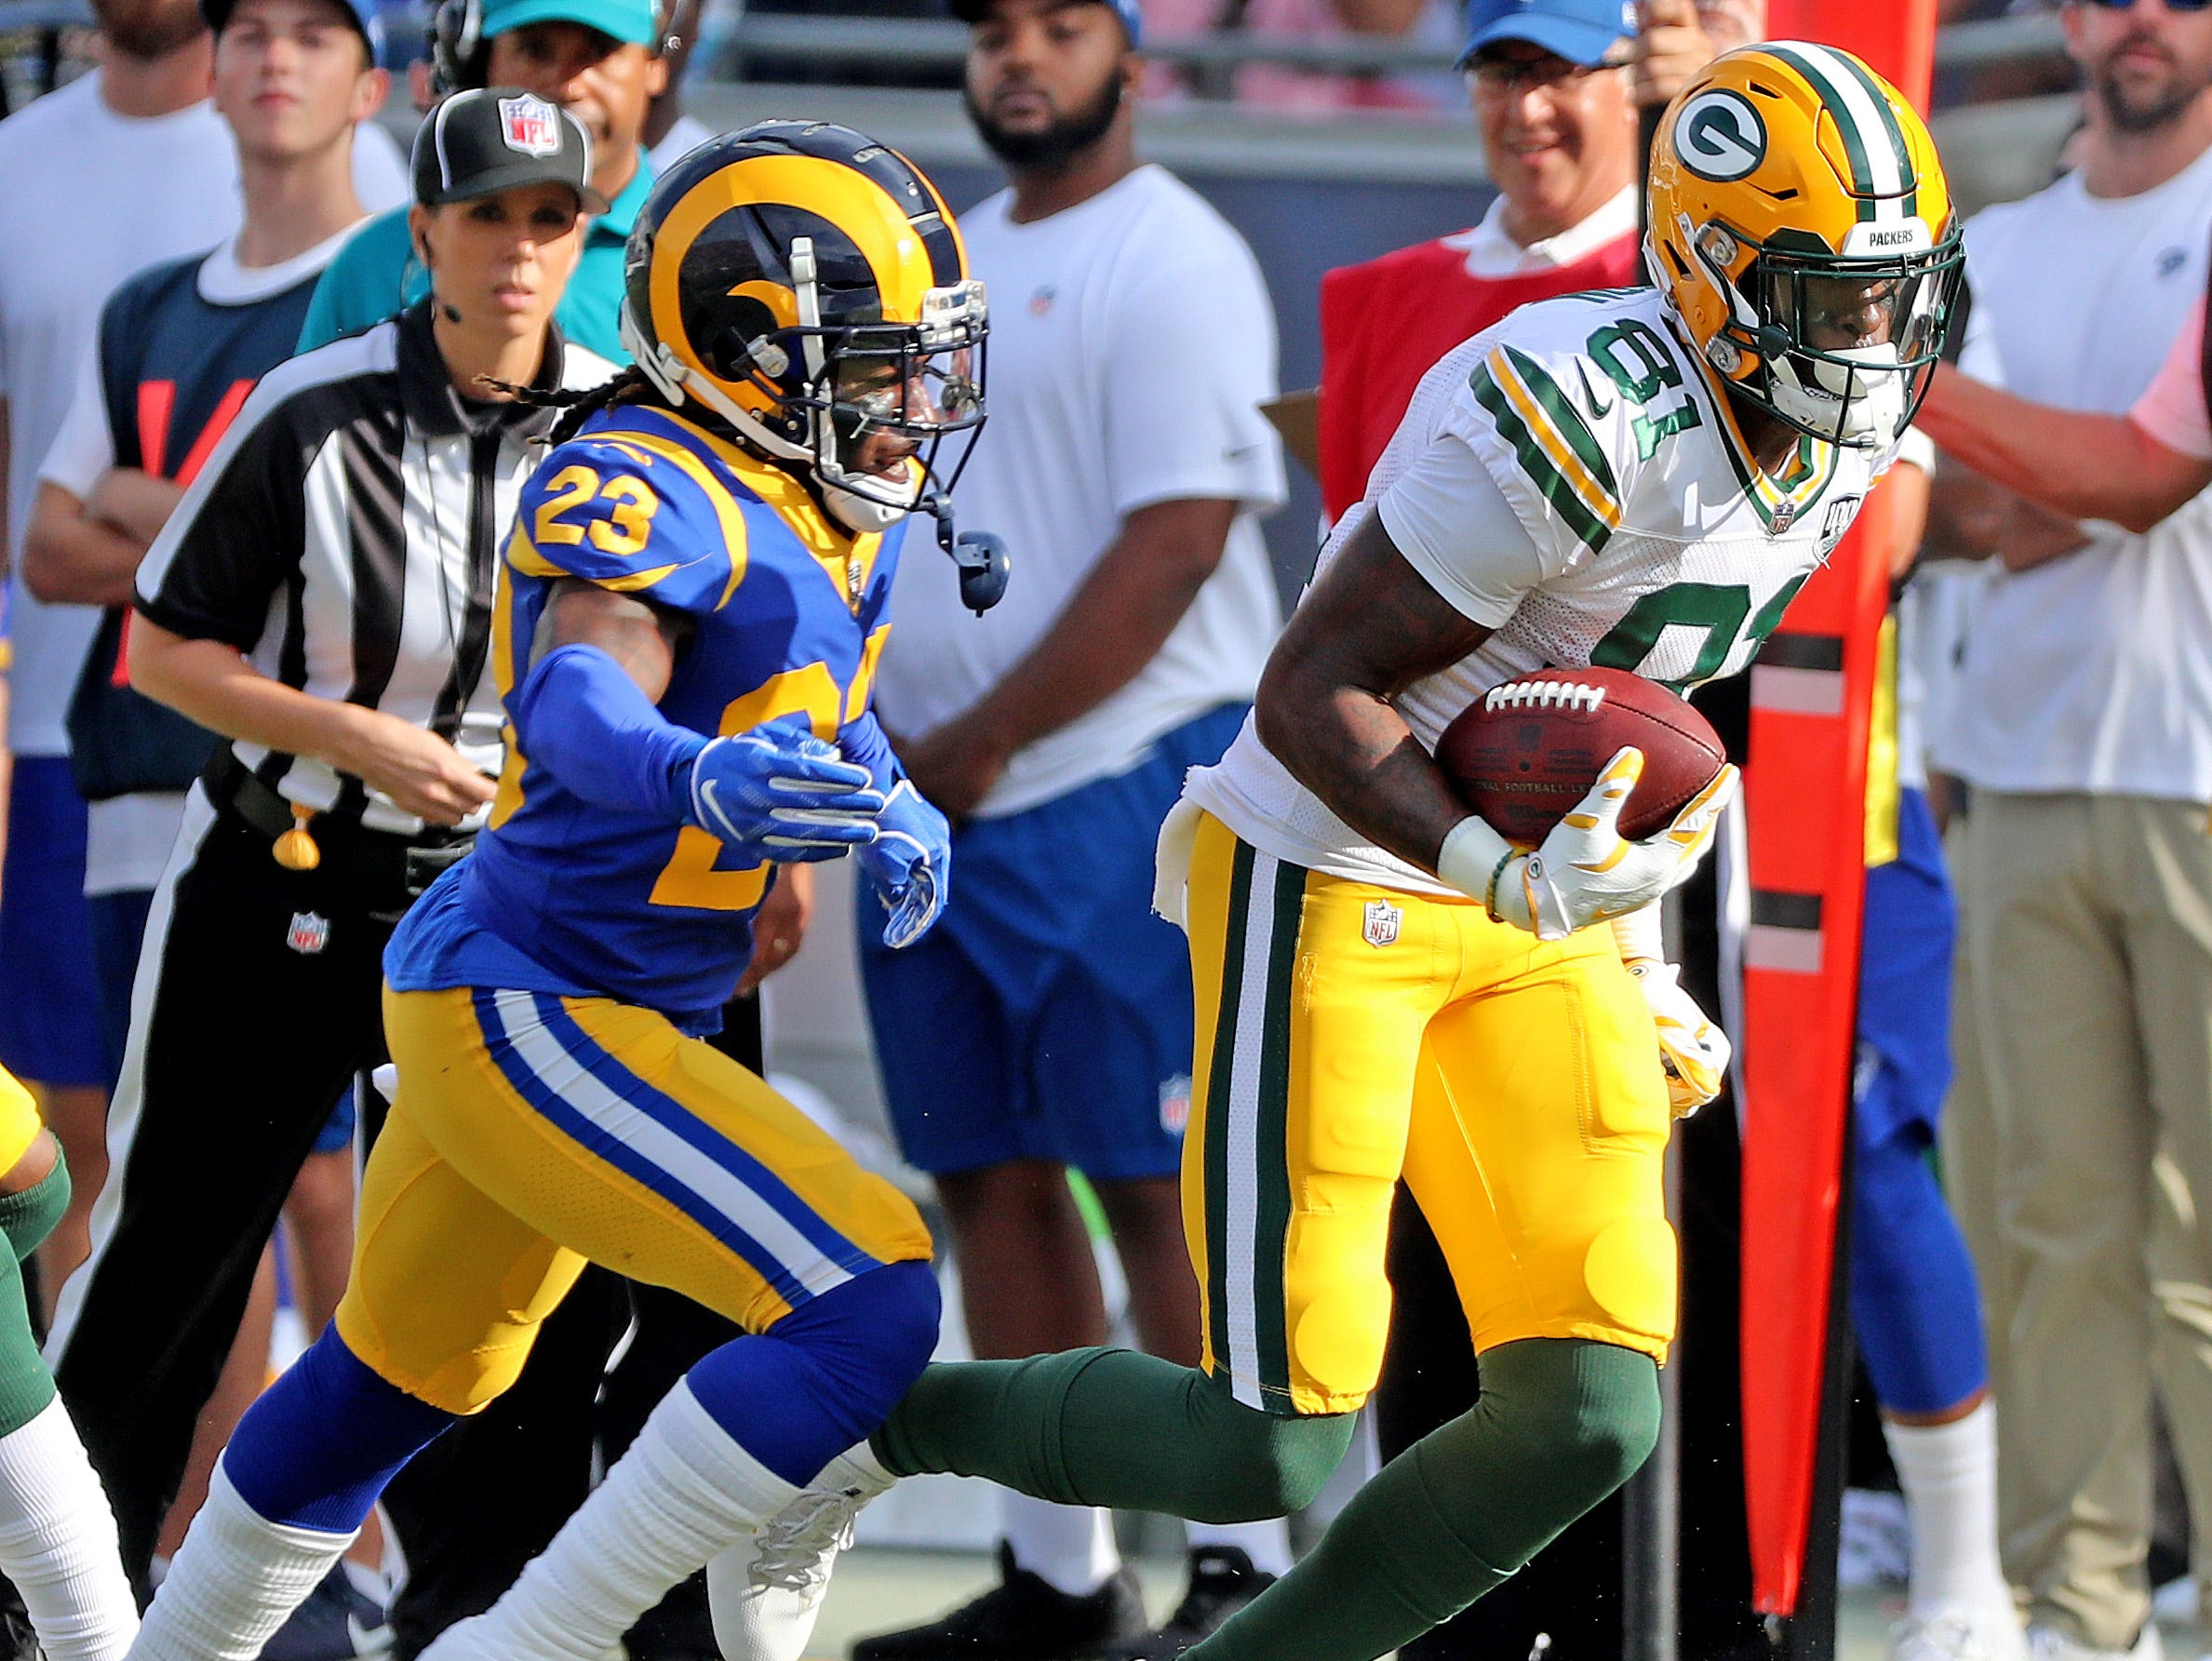 Green Bay Packers wide receiver Geronimo Allison (81) runs after a catch against the LA Rams Sunday, October 28, 2018 at the Memorial Coliseum in Los Angeles.